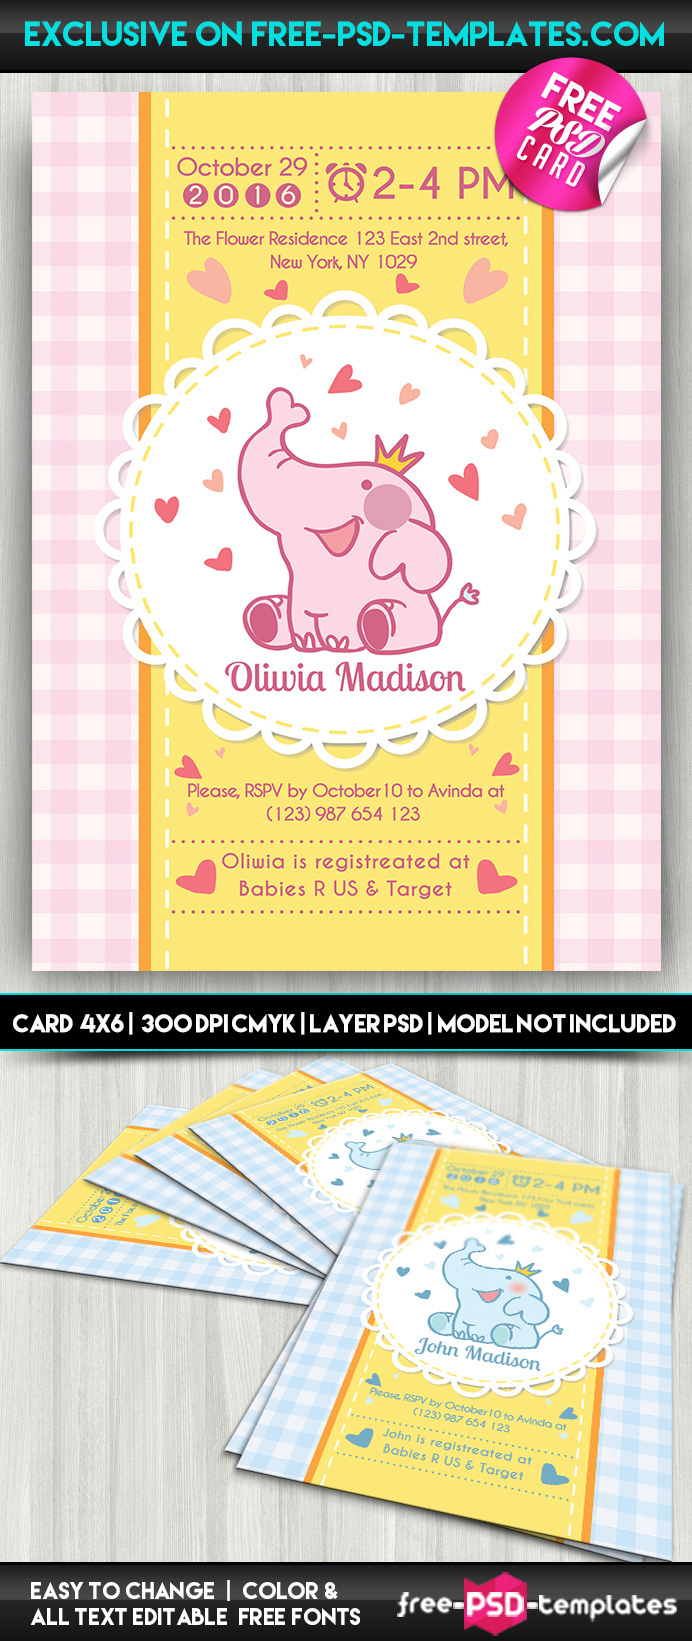 BABY SHOWER CARD U2013 FREE PSD CARD TEMPLATE On Behance